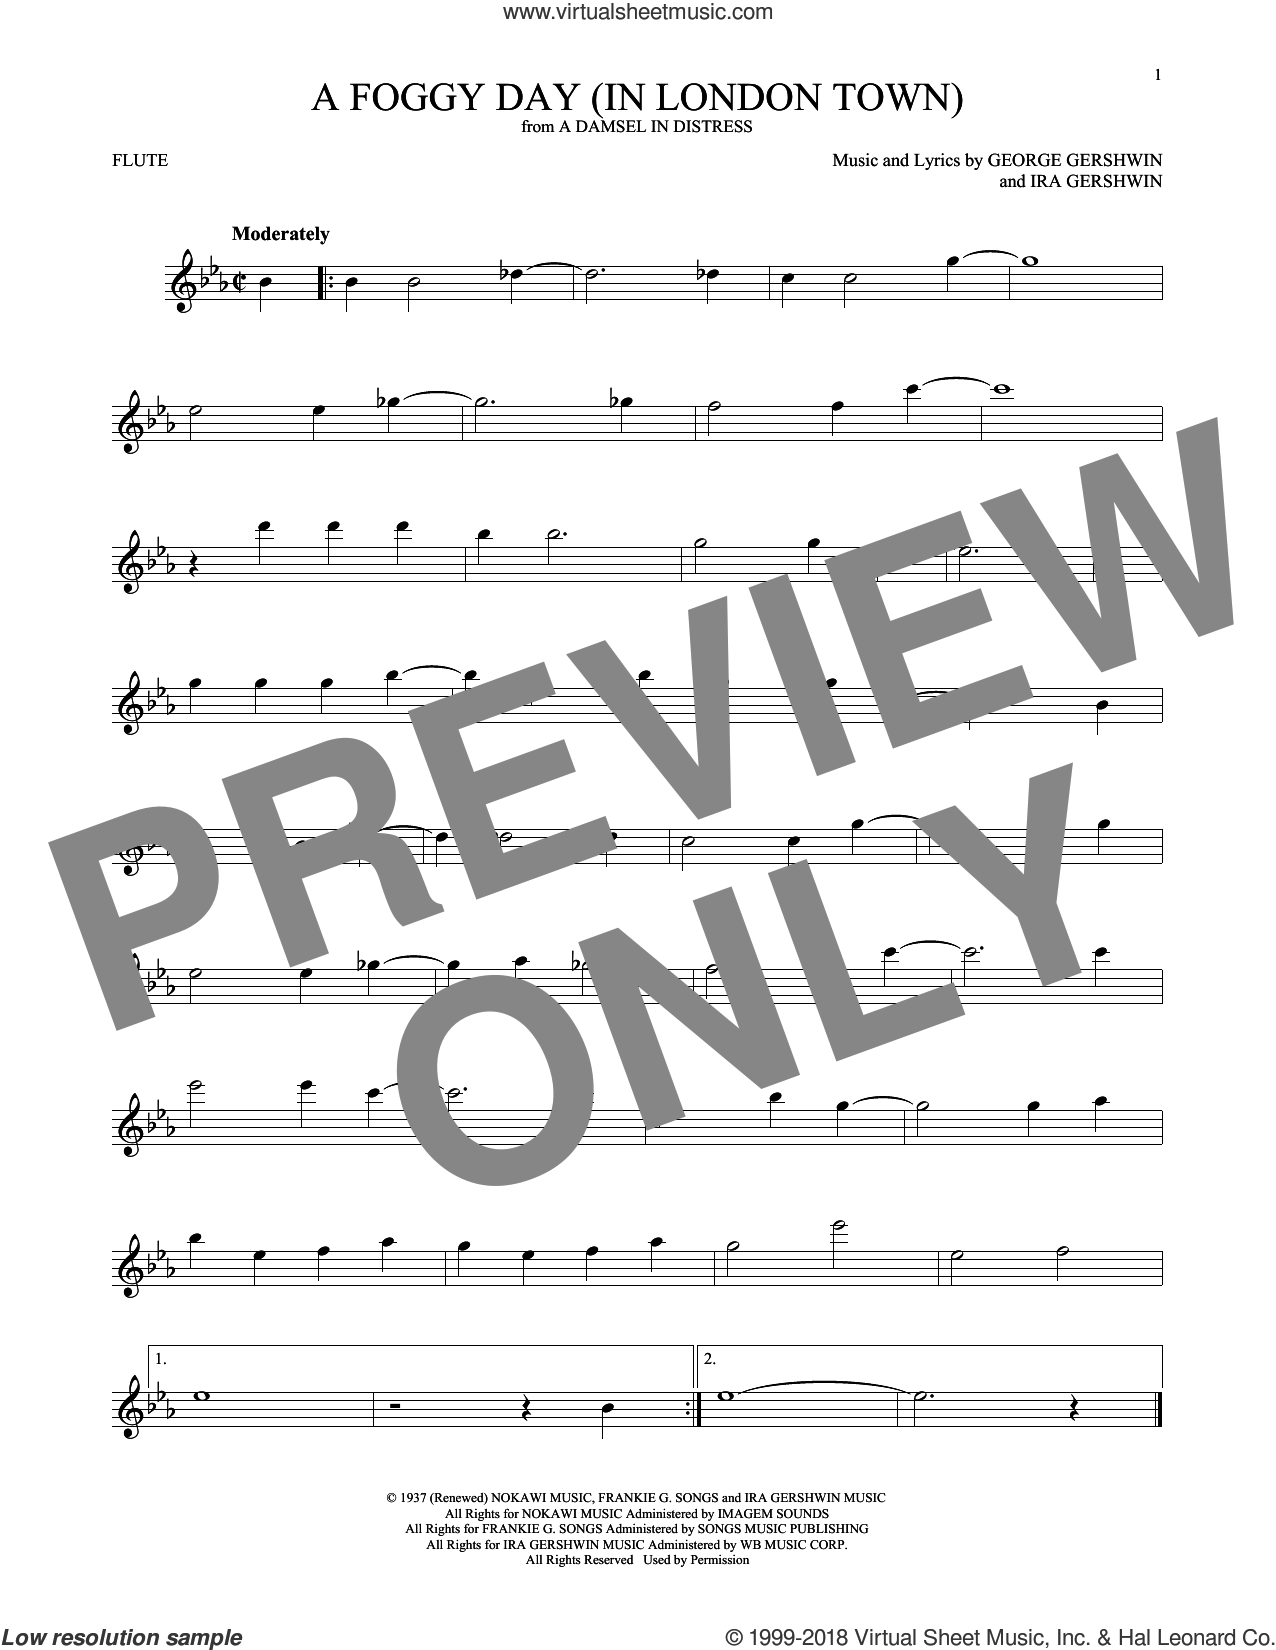 A Foggy Day (In London Town) sheet music for flute solo by George Gershwin and Ira Gershwin, intermediate. Score Image Preview.